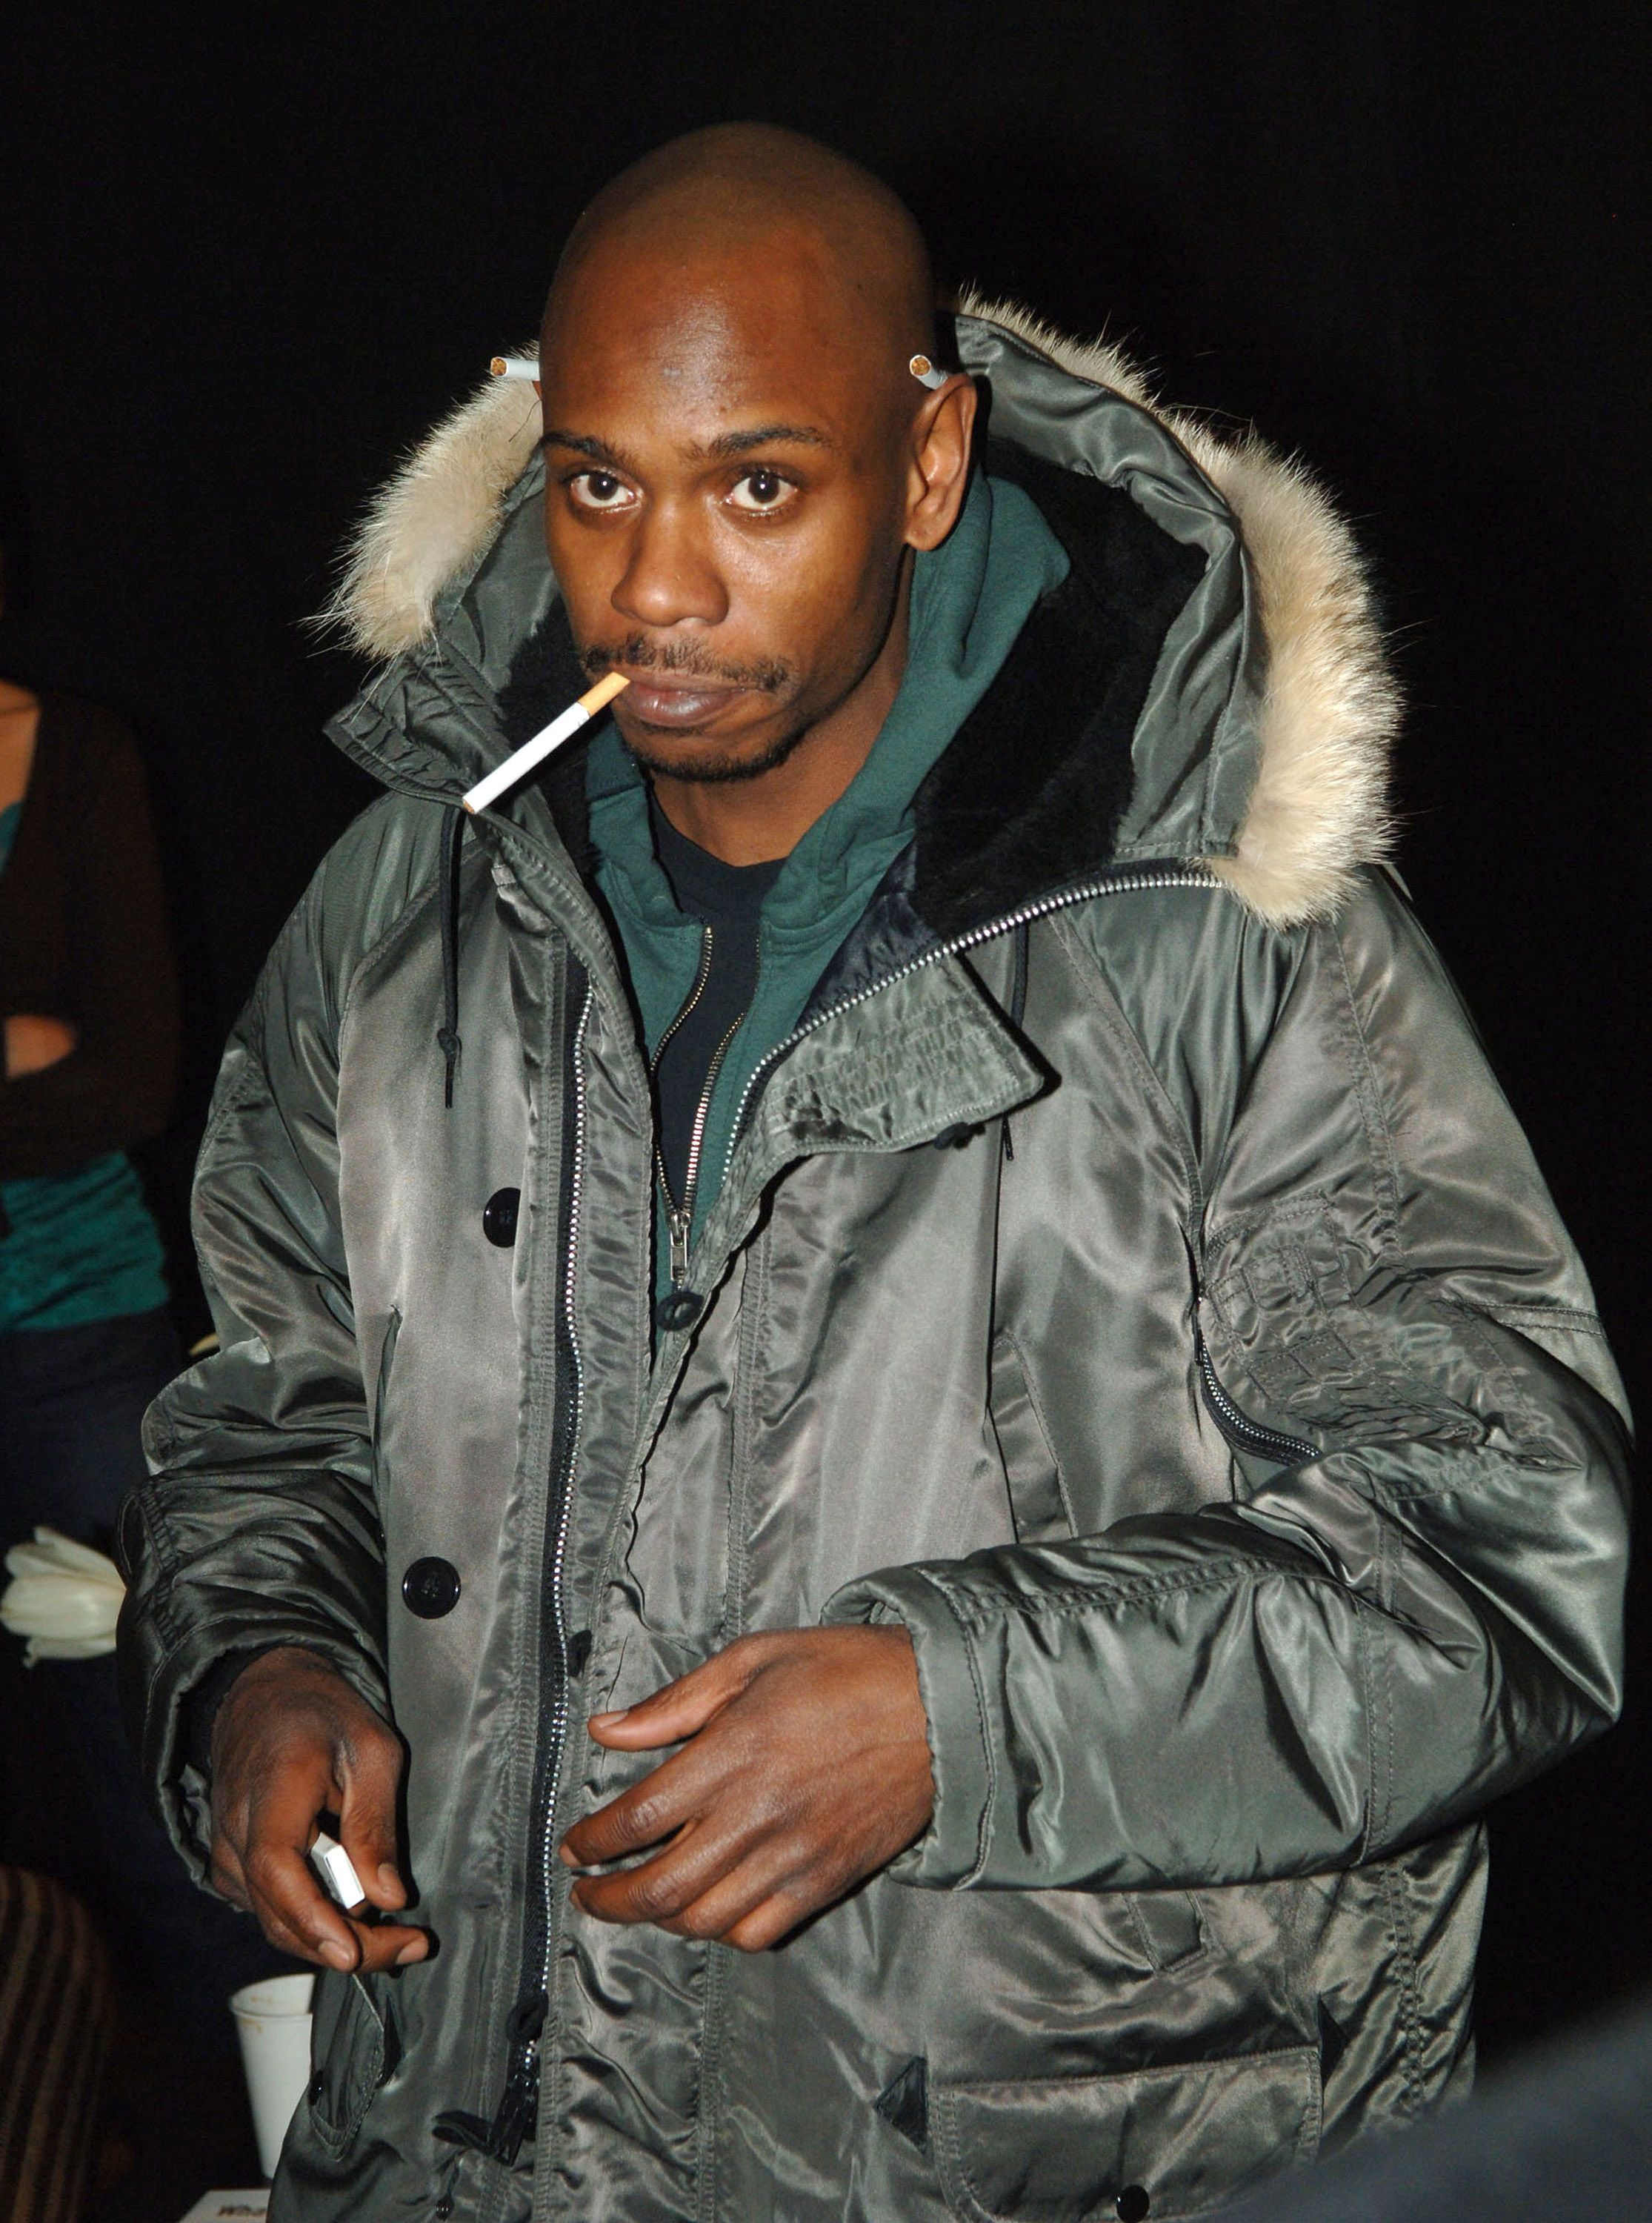 Dave Chappelle smoking a cigarette (or weed)